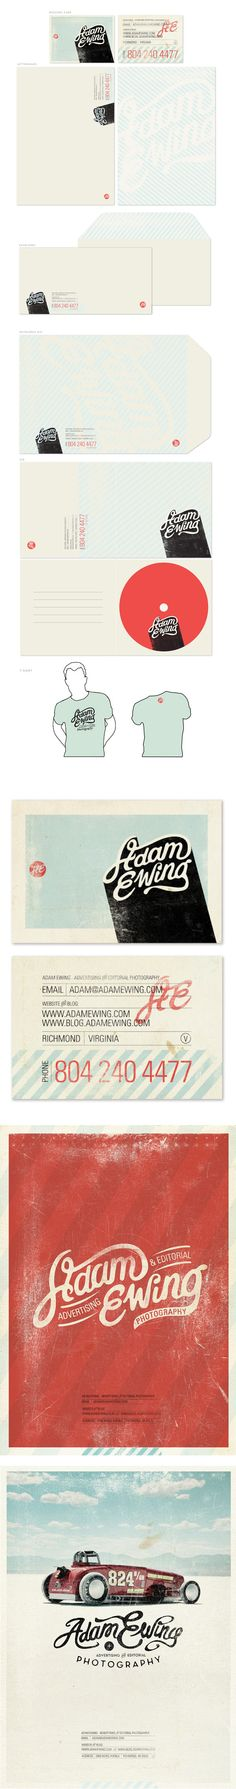 Identidad Corporativa / Adam Ewing by Alex Ramon